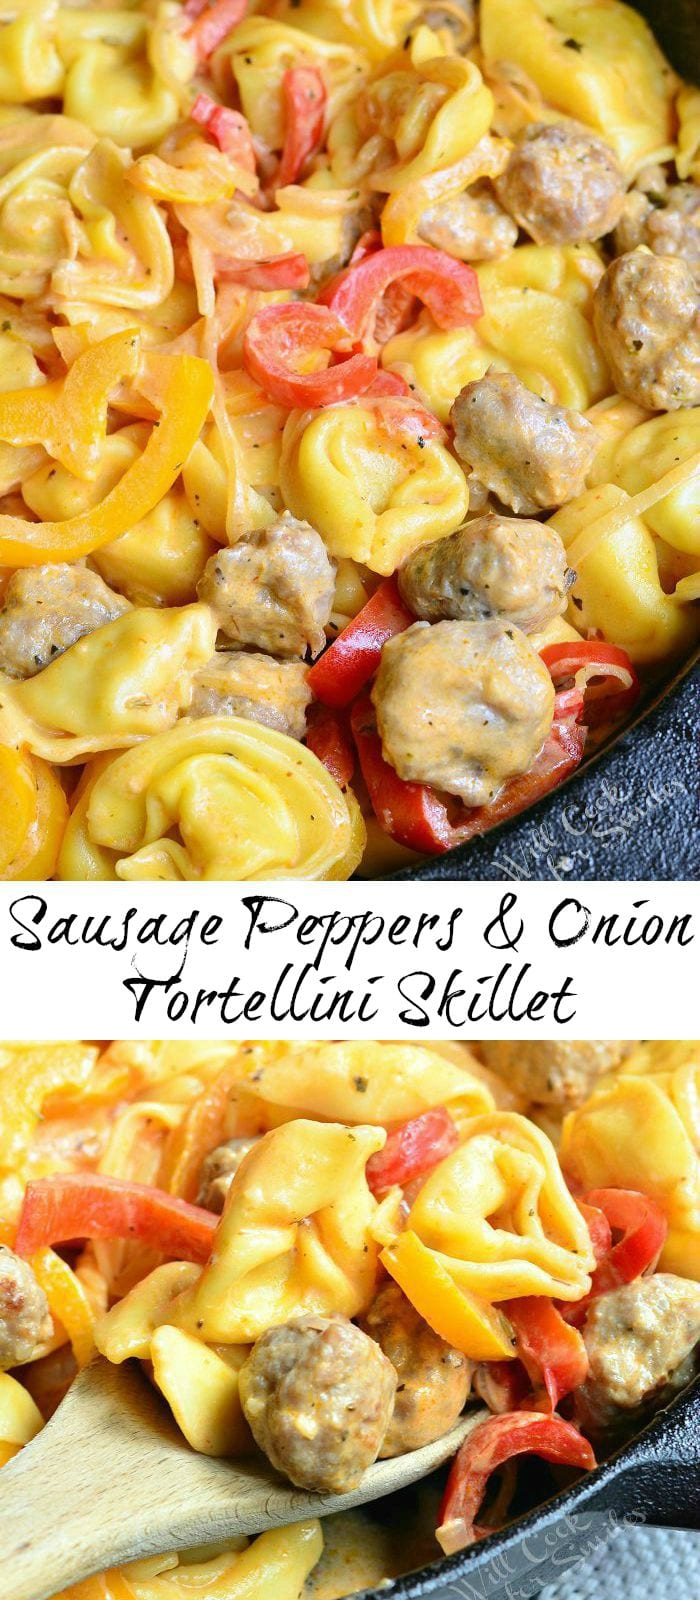 Sausage Peppers and Onion Tortellini Skillet   from willcookforsmiles.com